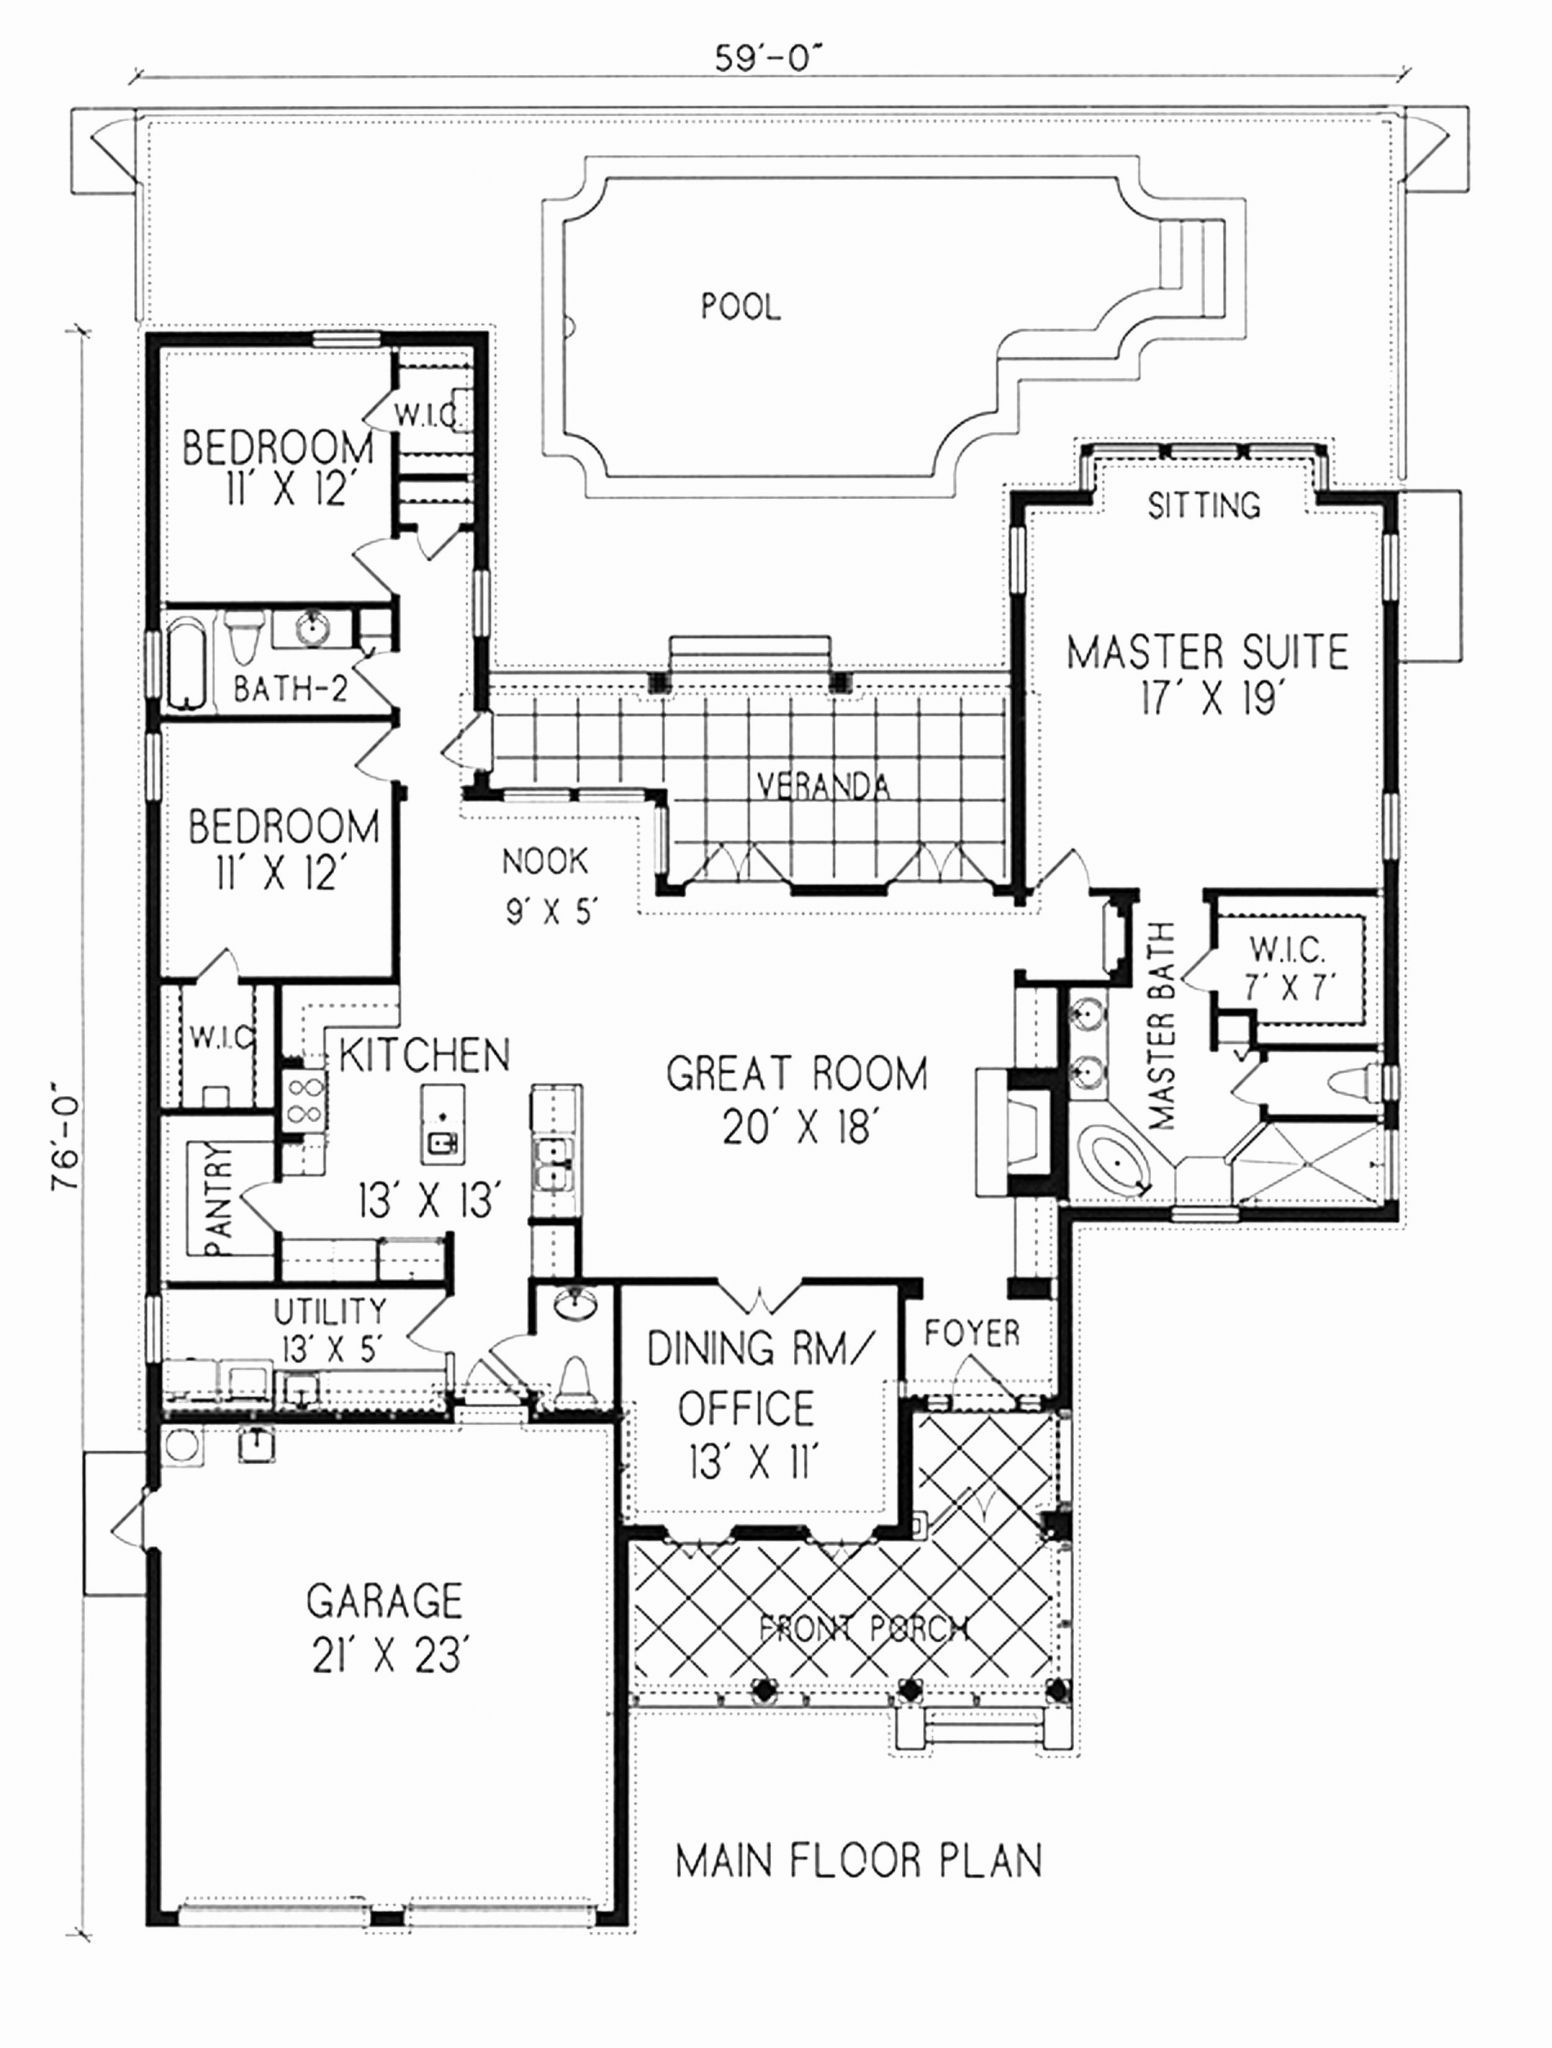 Smartdraw 3d Floor Plans Beautiful House Plans Colonial House Plans Floor Plans